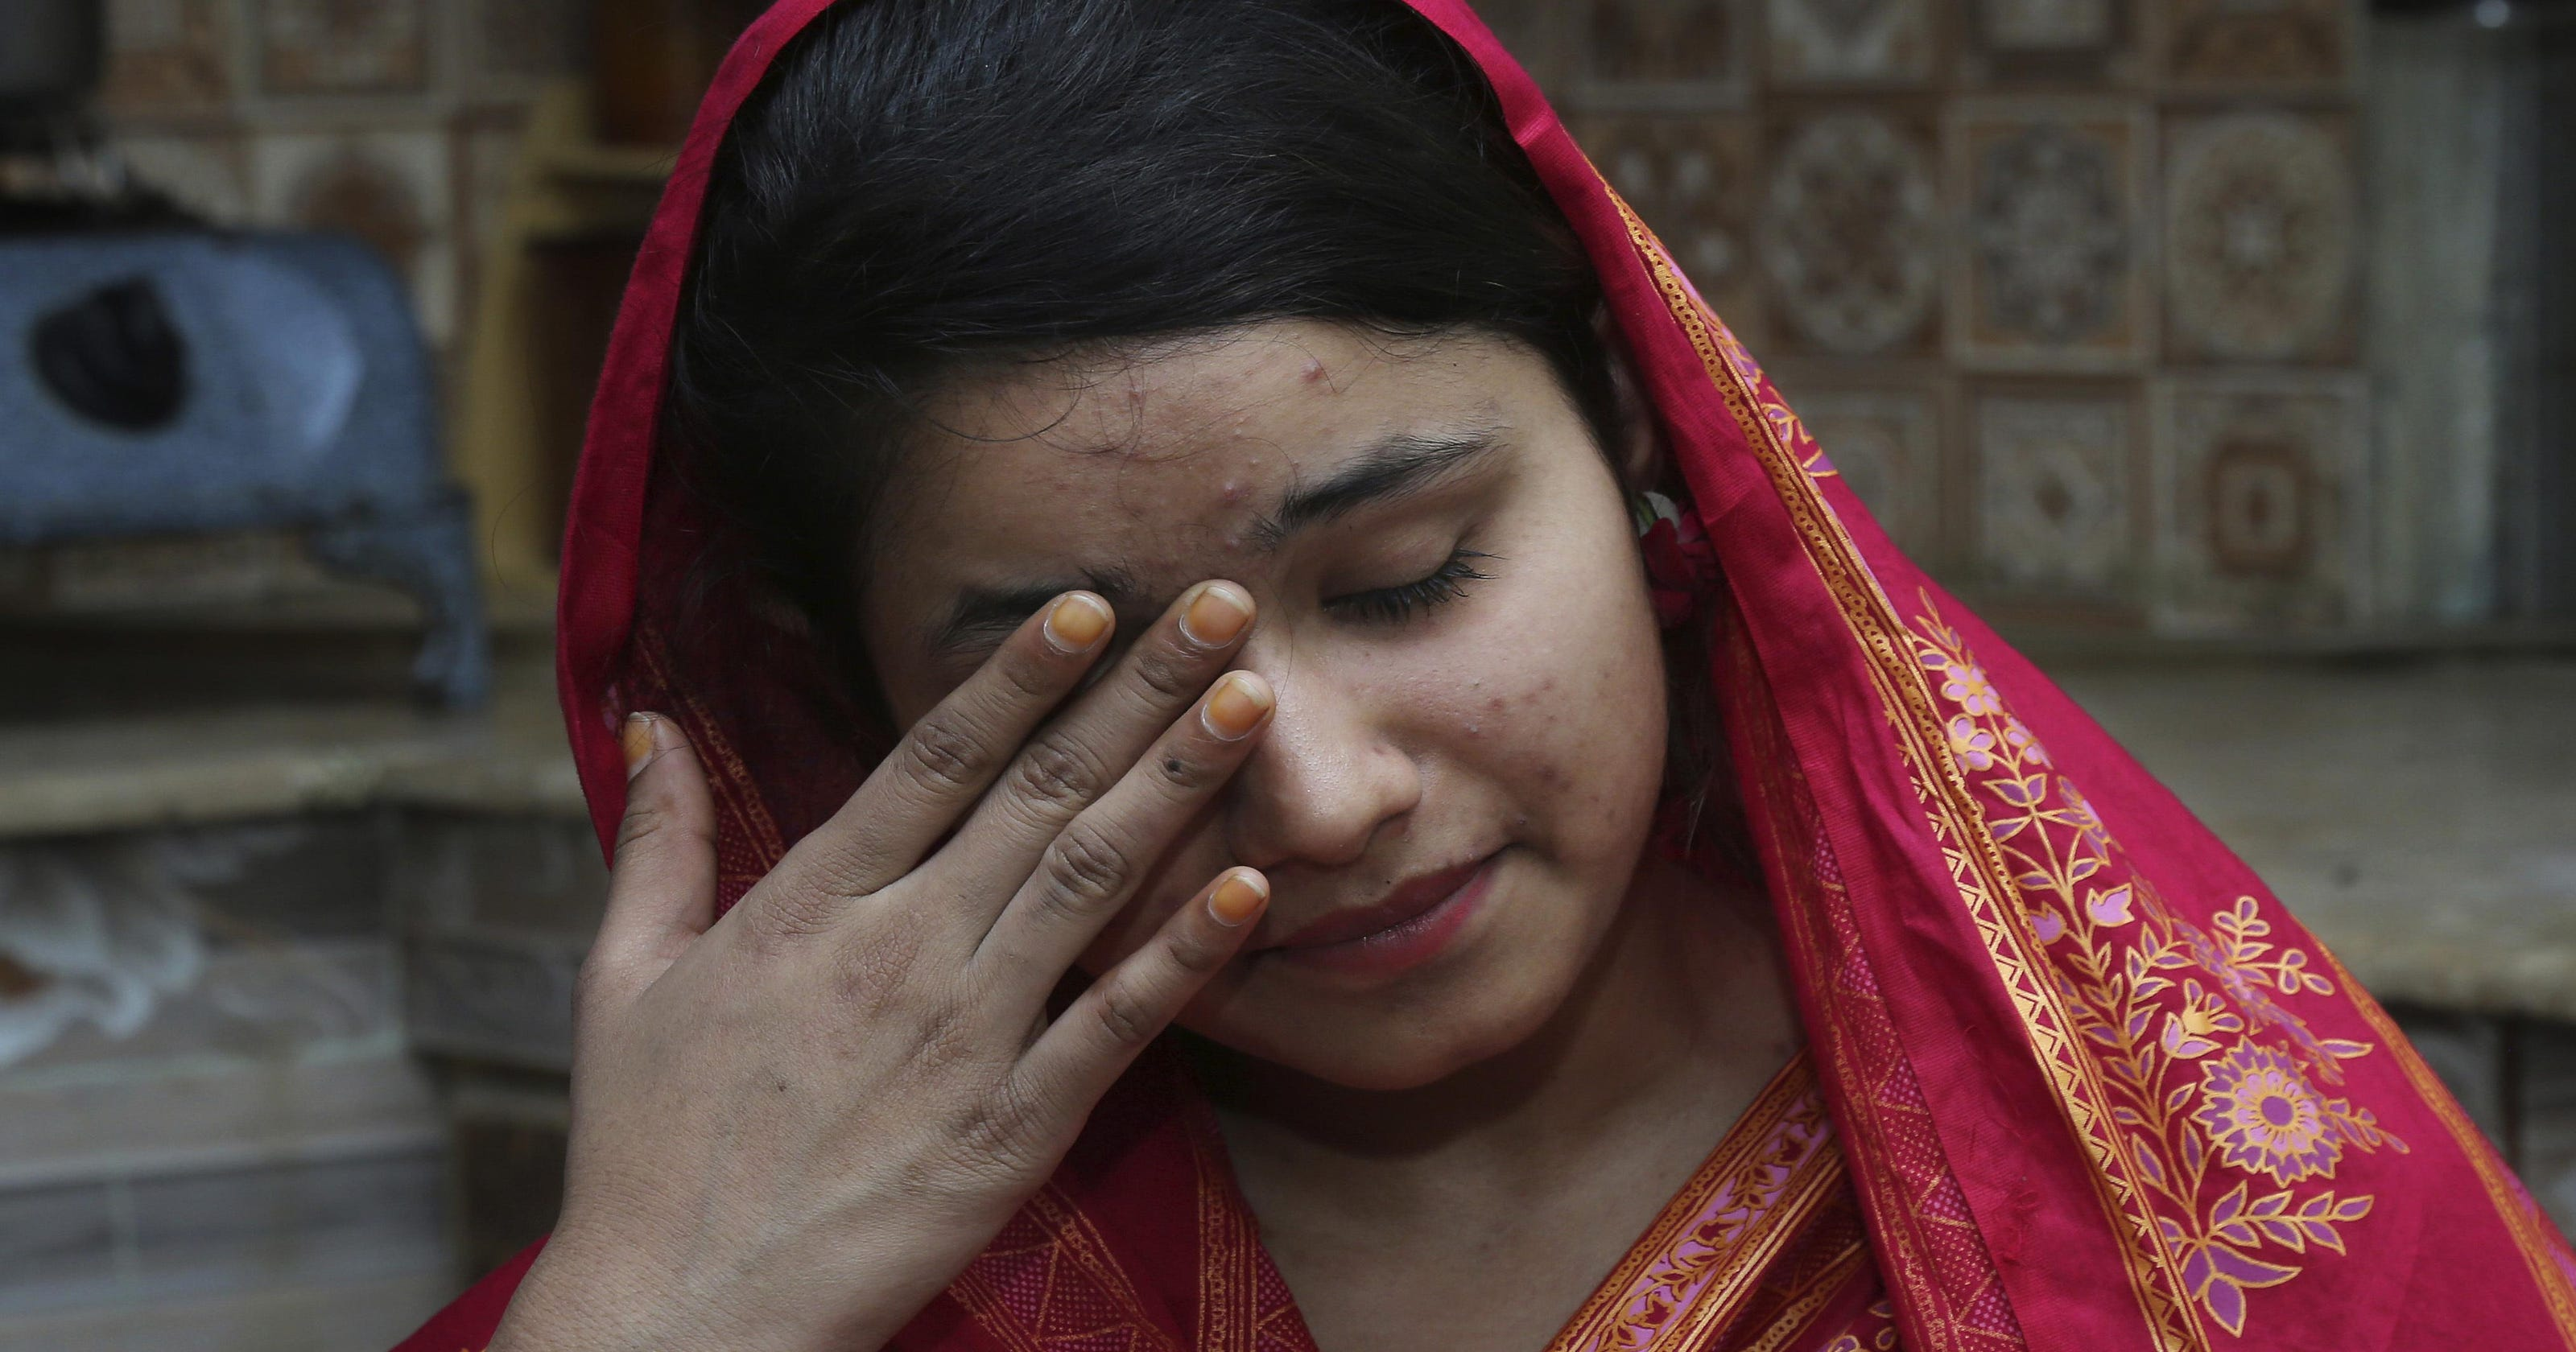 In marriage market, Pakistani Christian girls lured to China